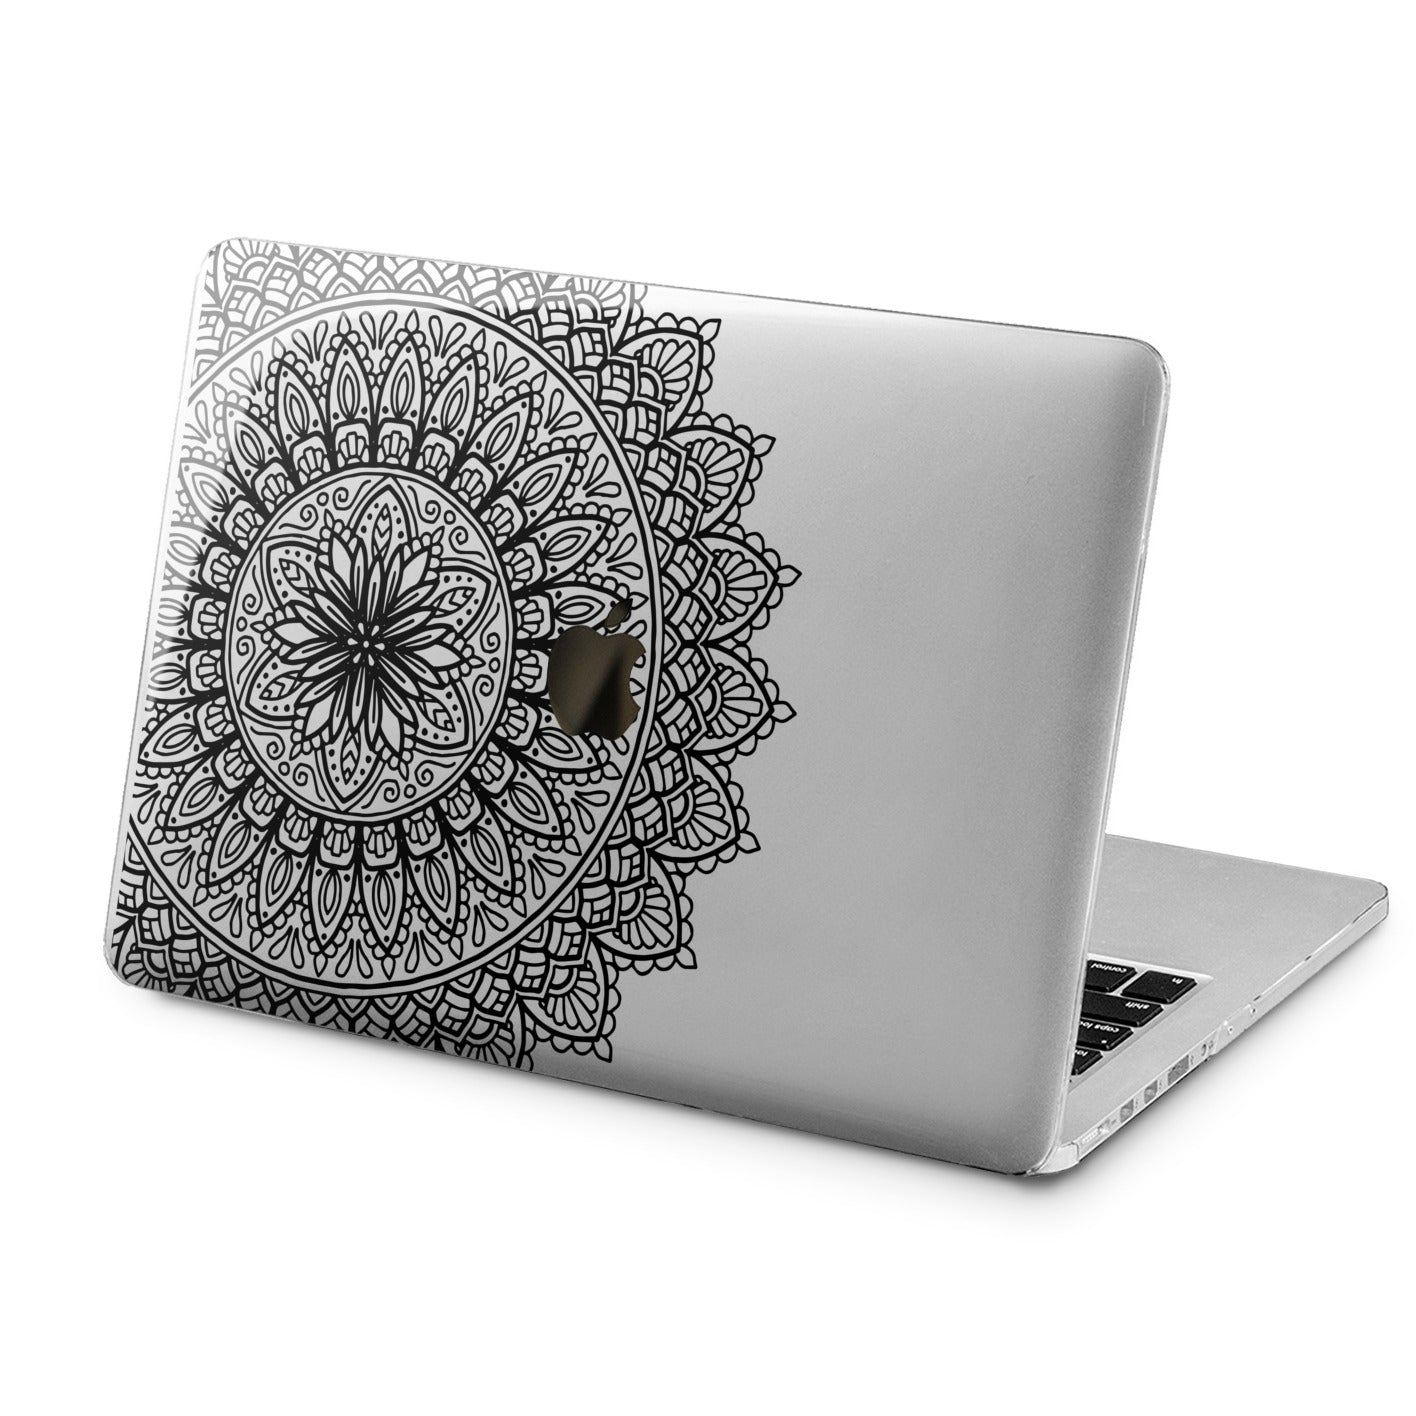 Lex Altern Lex Altern Elegant Mandala Case for your Laptop Apple Macbook.